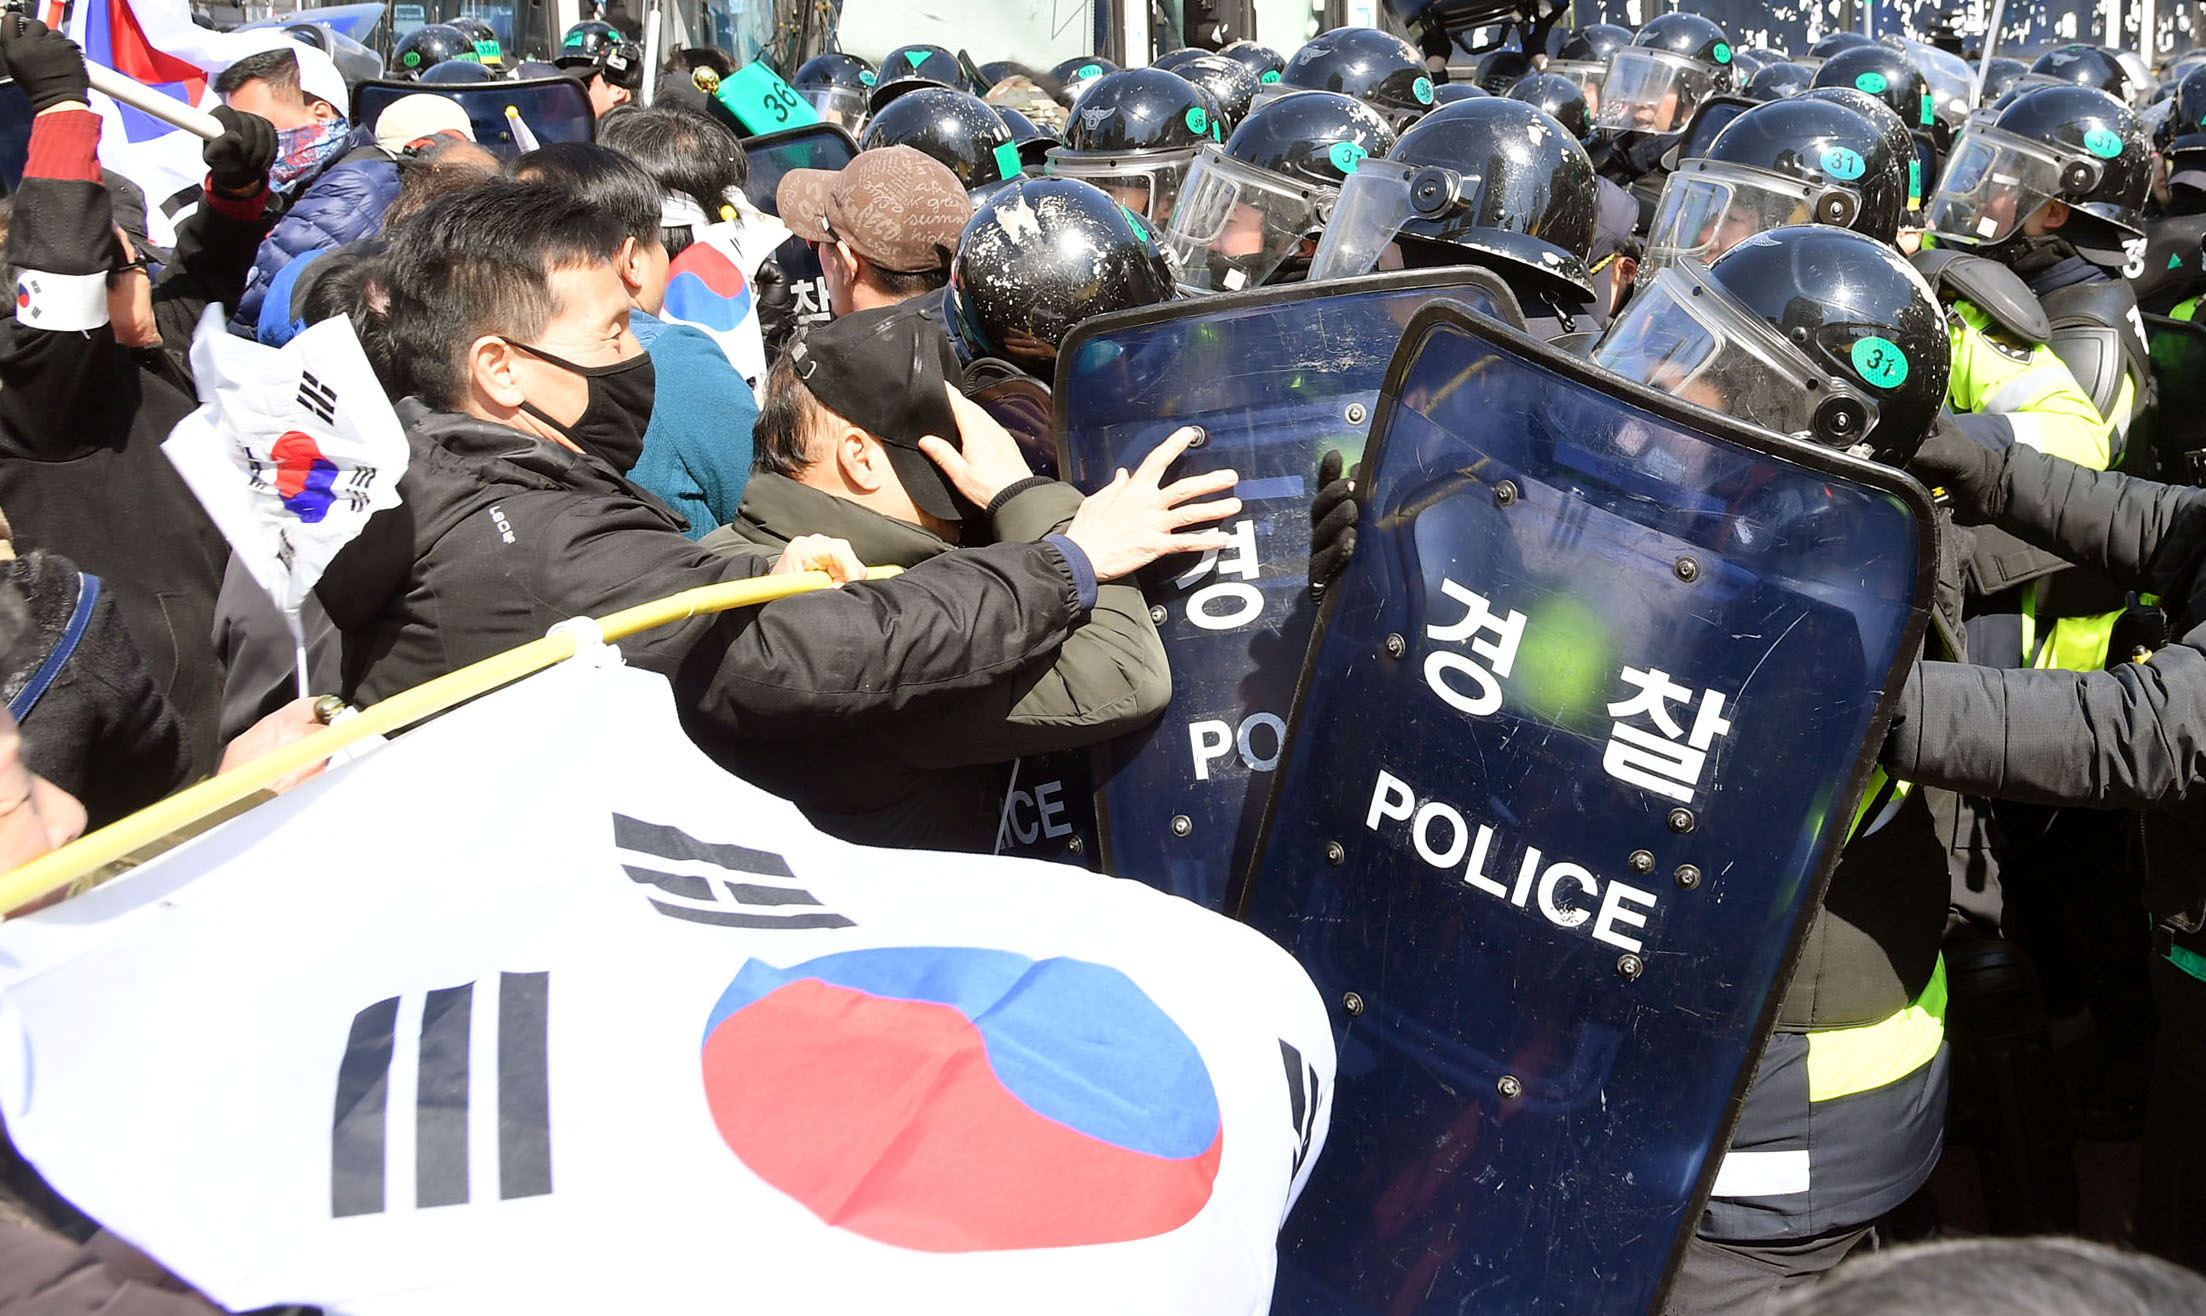 Protesters supporting South Korean President Park Geun-hye clash with riot policemen near the Constitutional Court in Seoul, South Korea, on March 10, 2017.